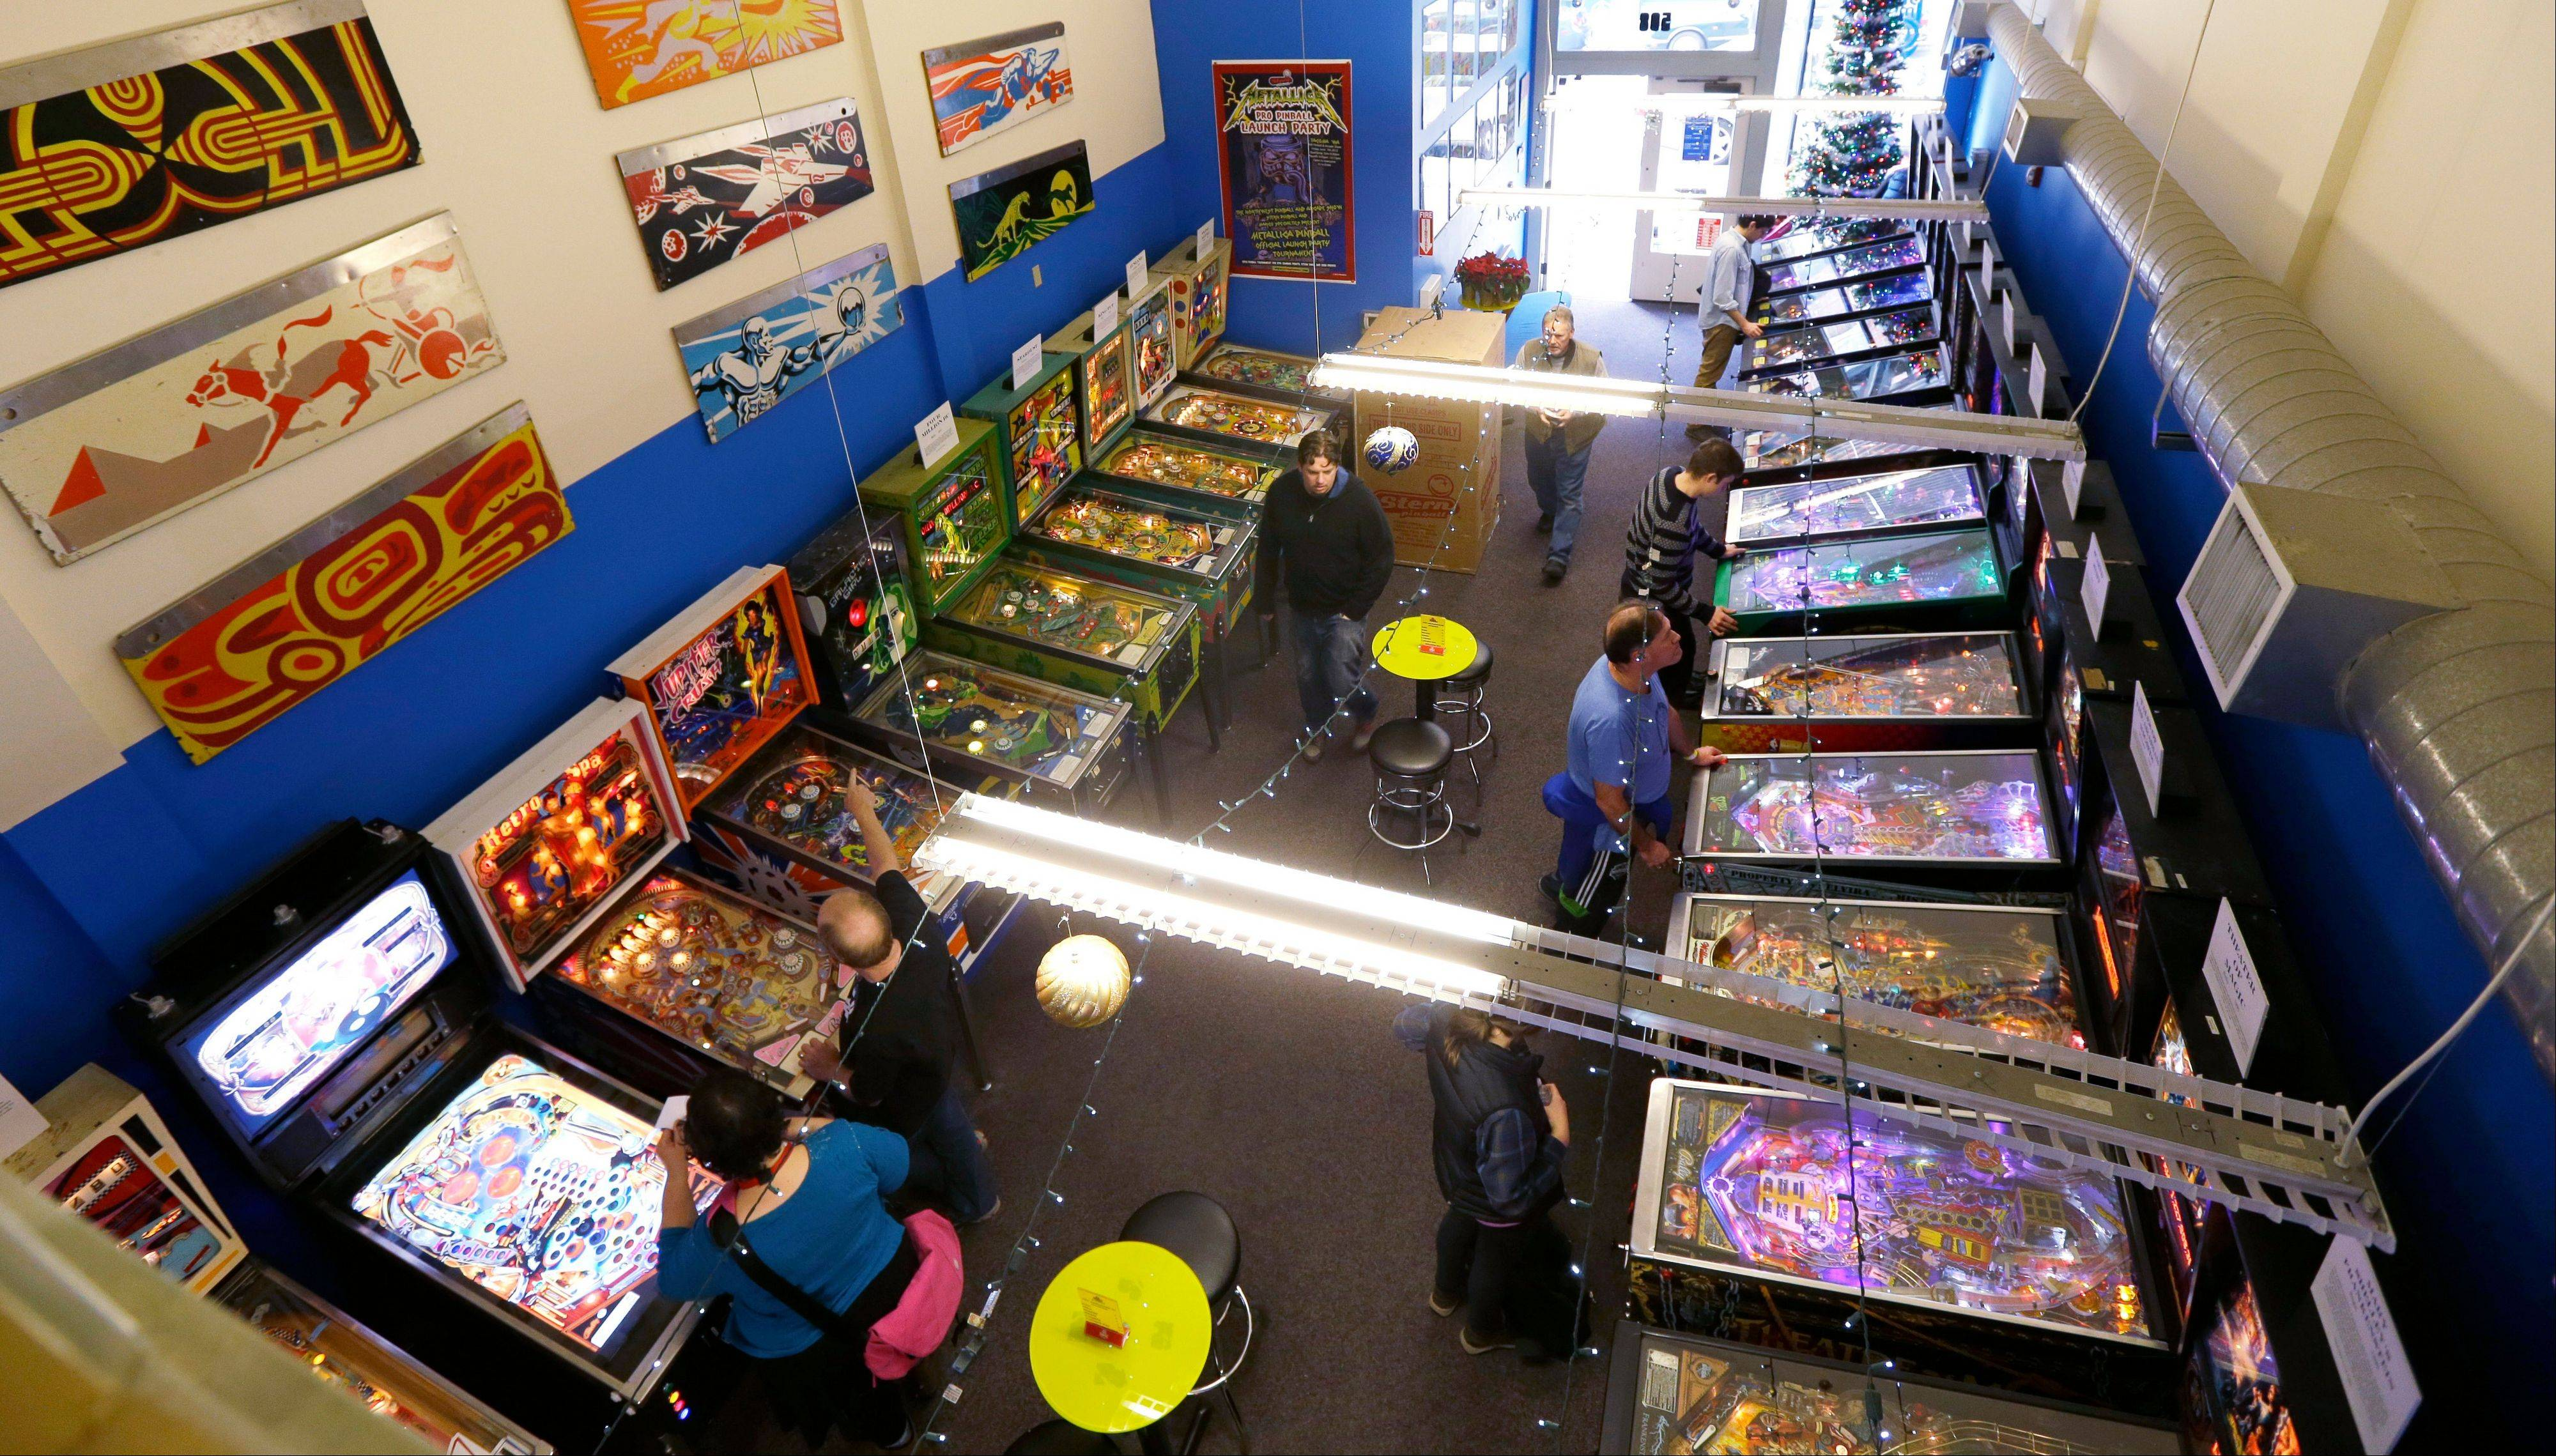 Modern pinball machines line the wall at right while older models sit on the left at the Seattle Pinball Museum. The museum allows visitors who pay the admission fee to play unlimited rounds on the machines.